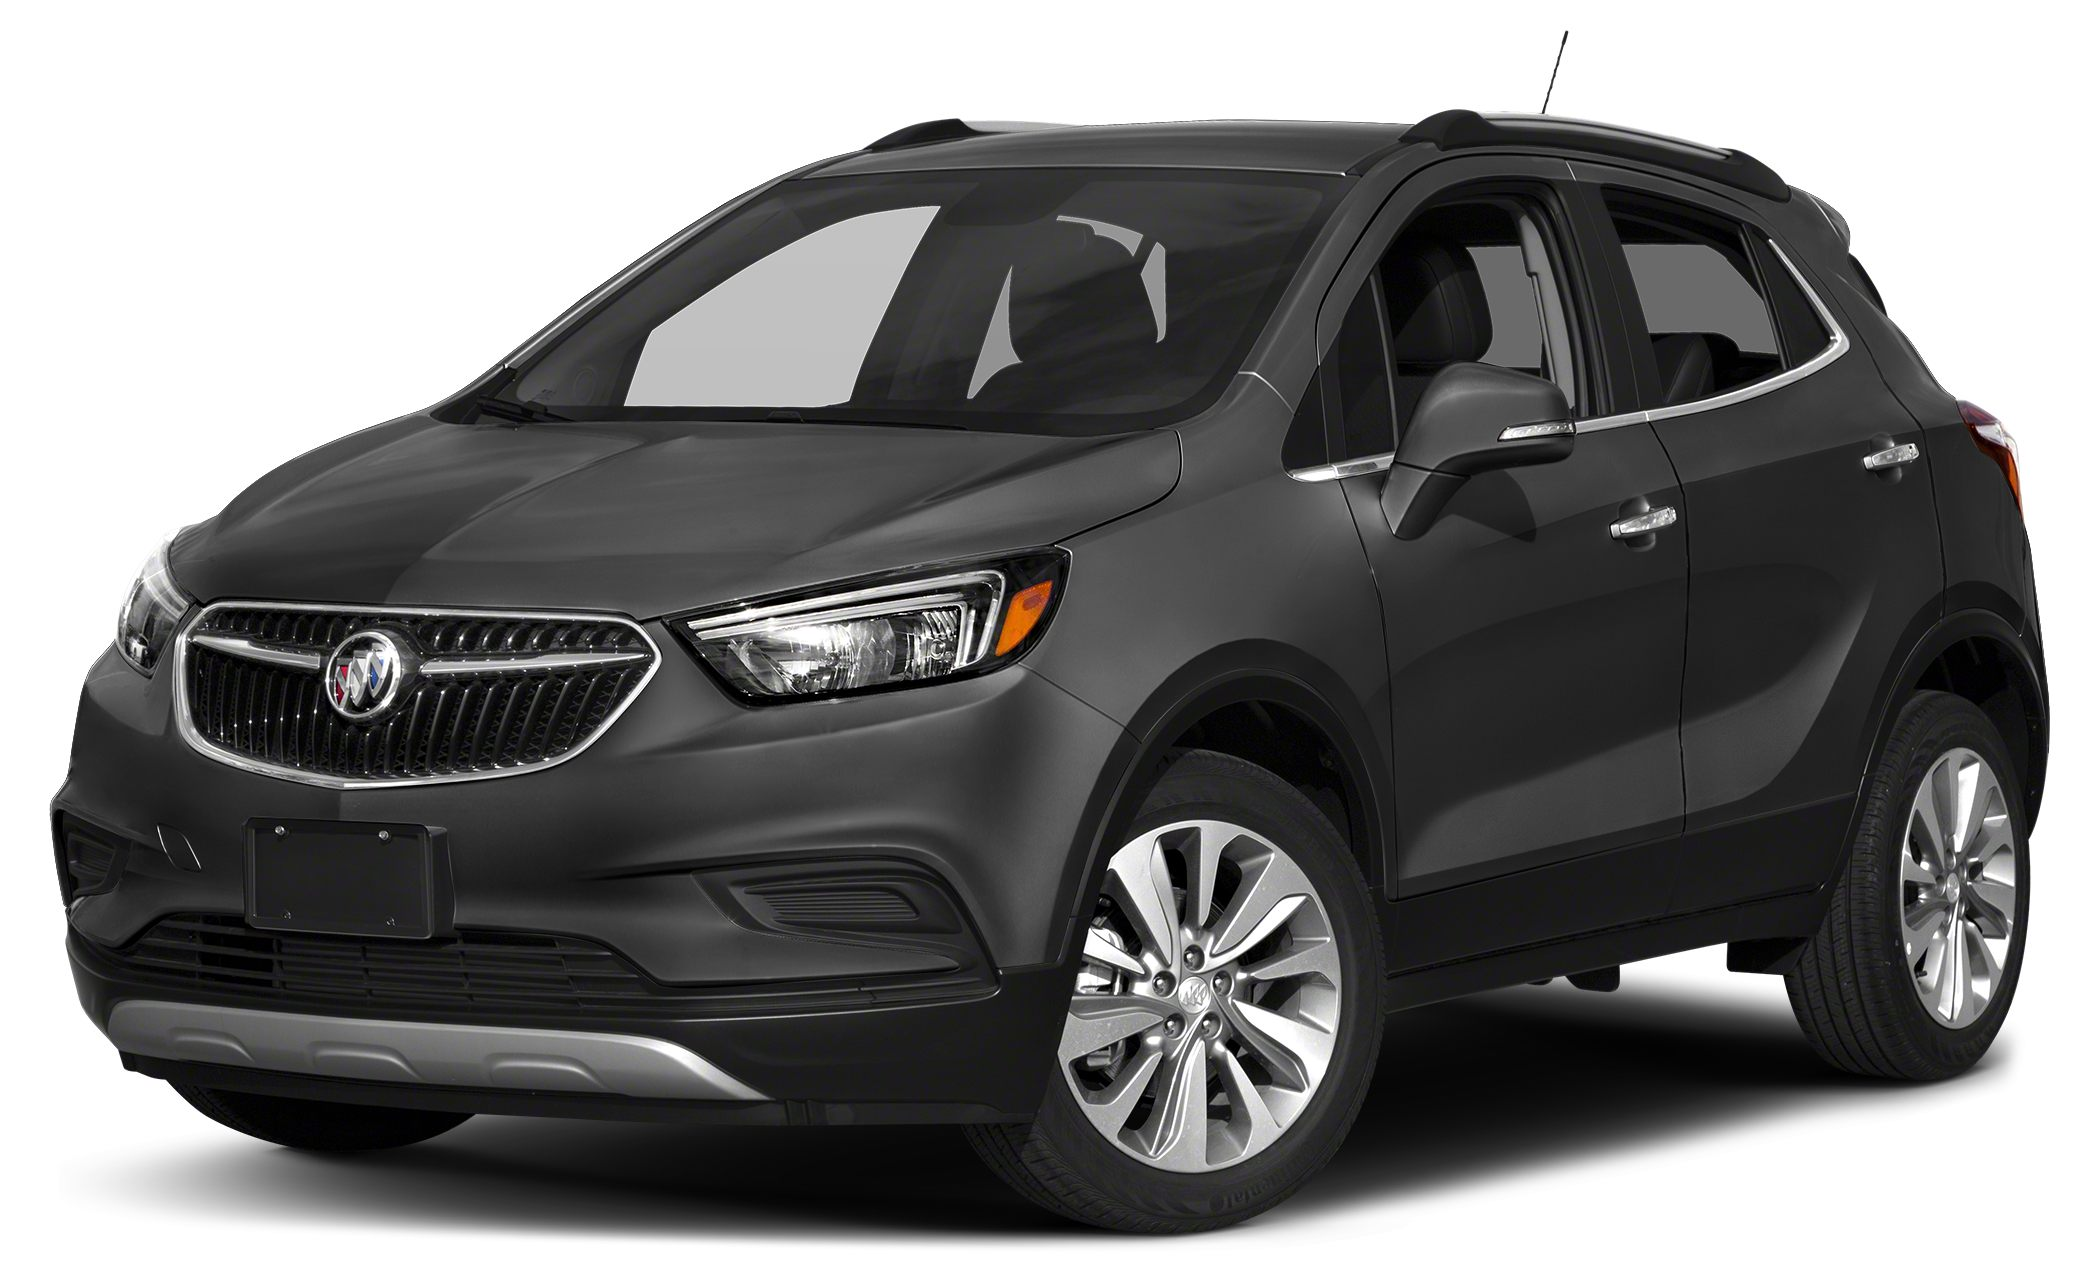 2017 Buick Encore Preferred Miles 5Color Graphite Gray Metallic Stock H096561 VIN KL4CJASB0H